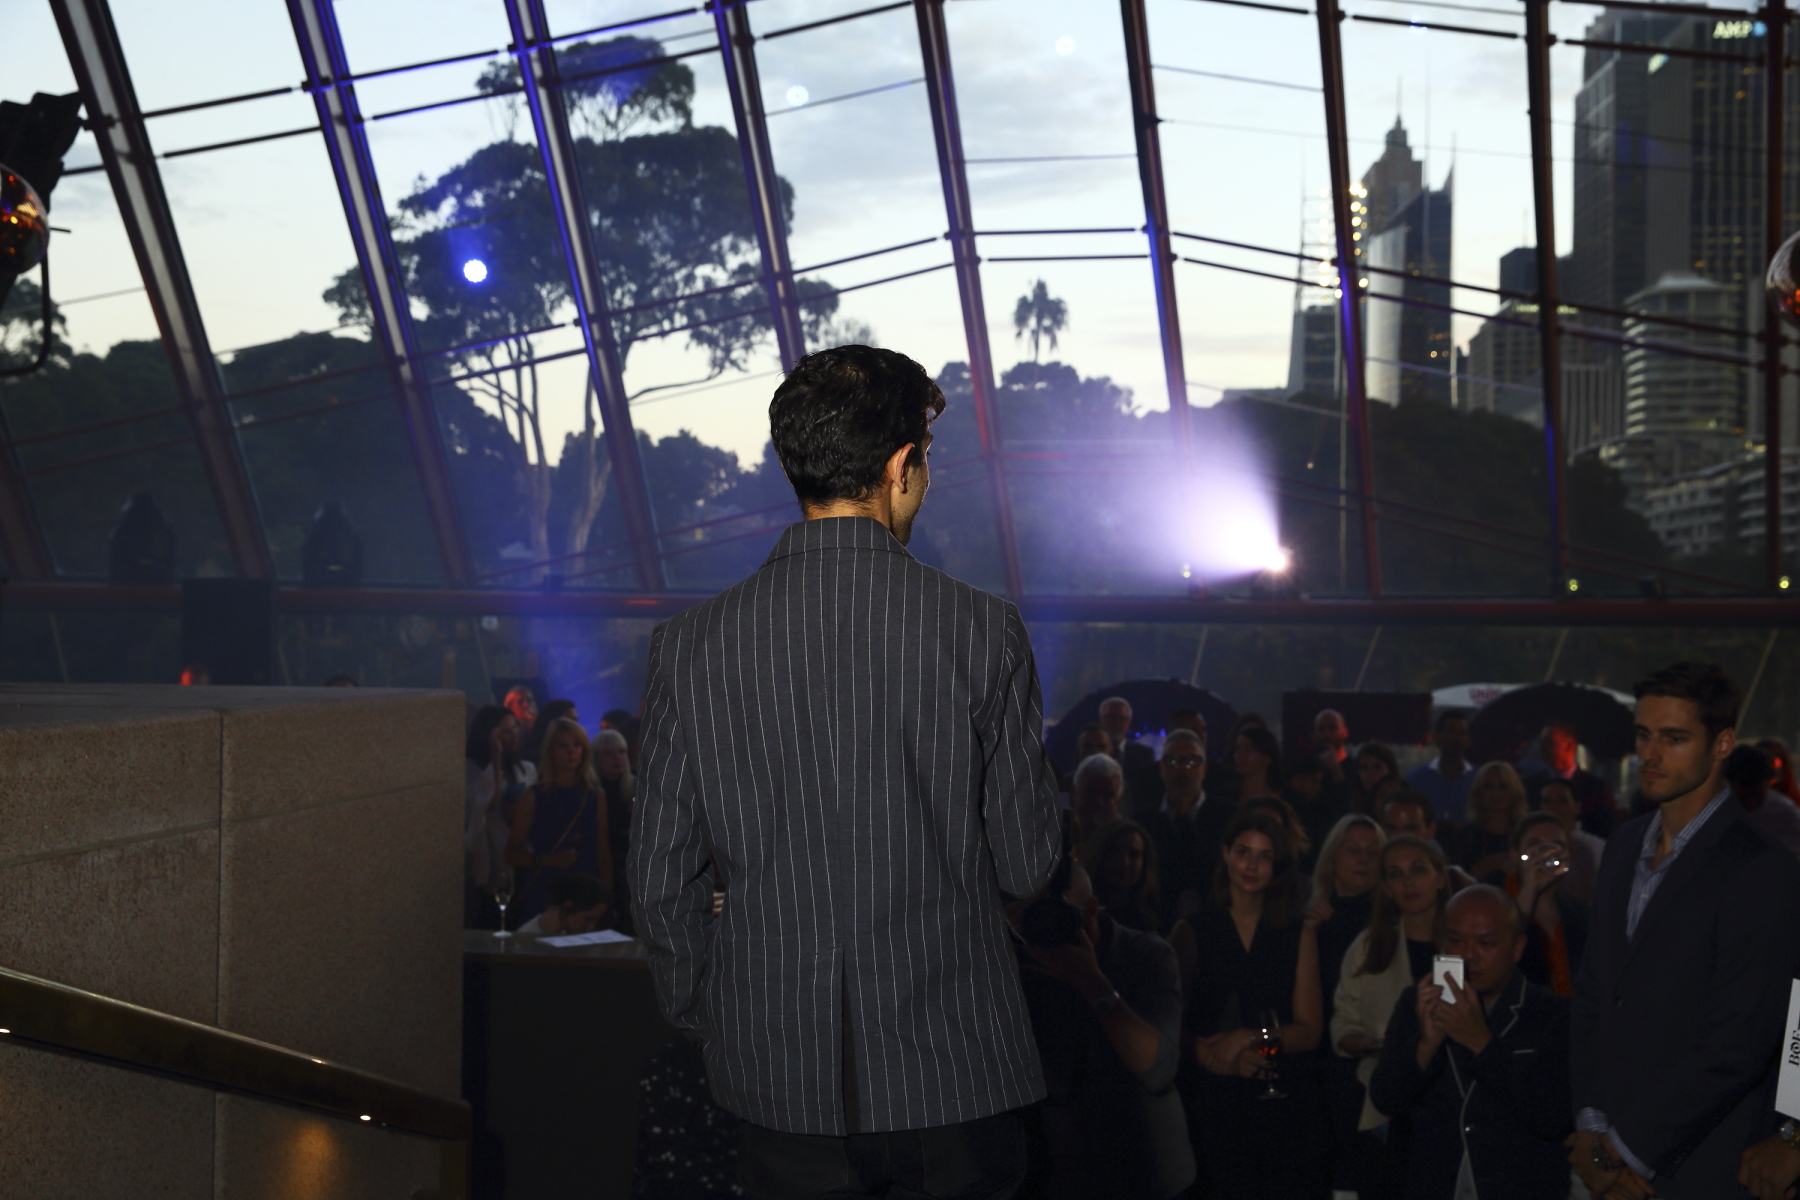 BoF's Voices Soirée at the Opera House